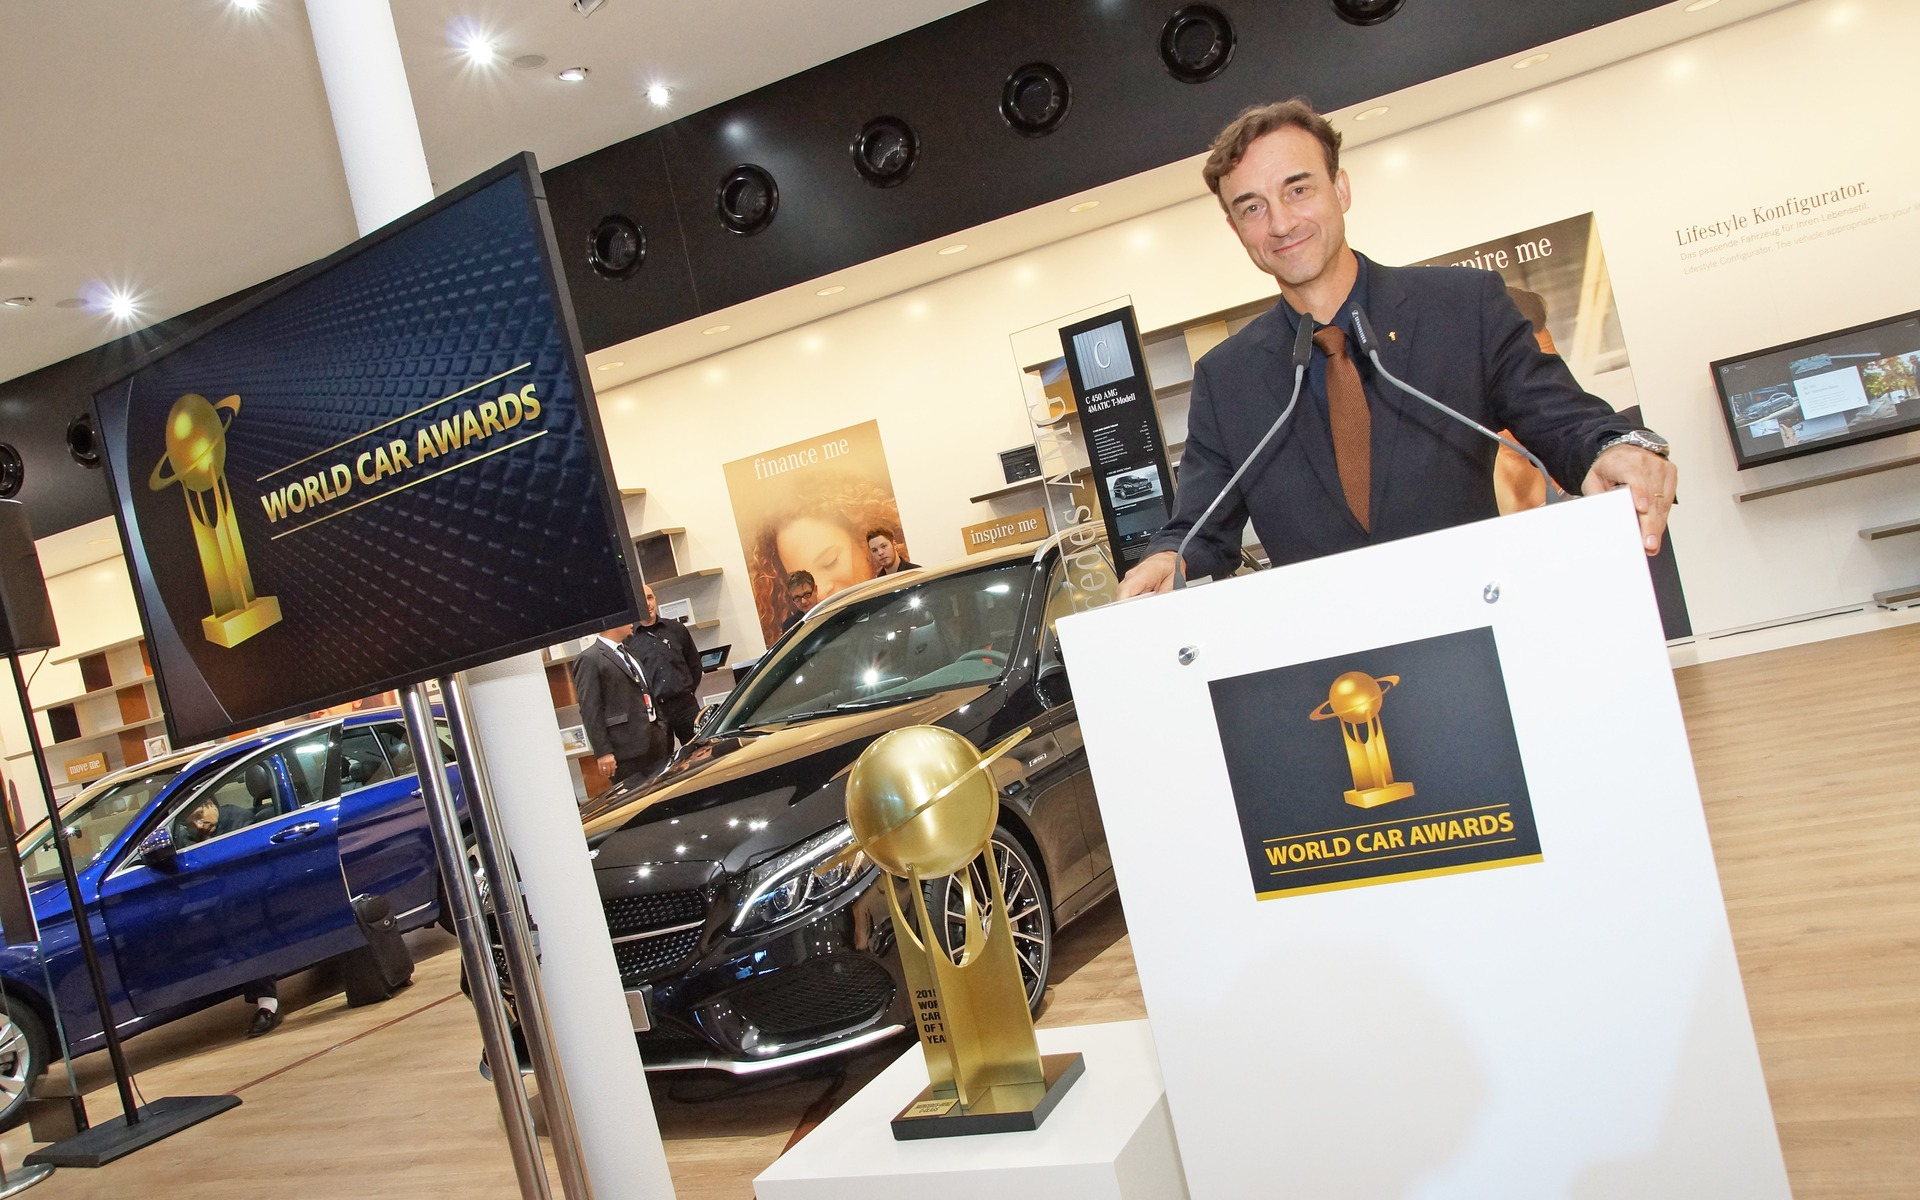 World Car of the Year Awards Ceremony at the 2015 Frankfurt Motor Show